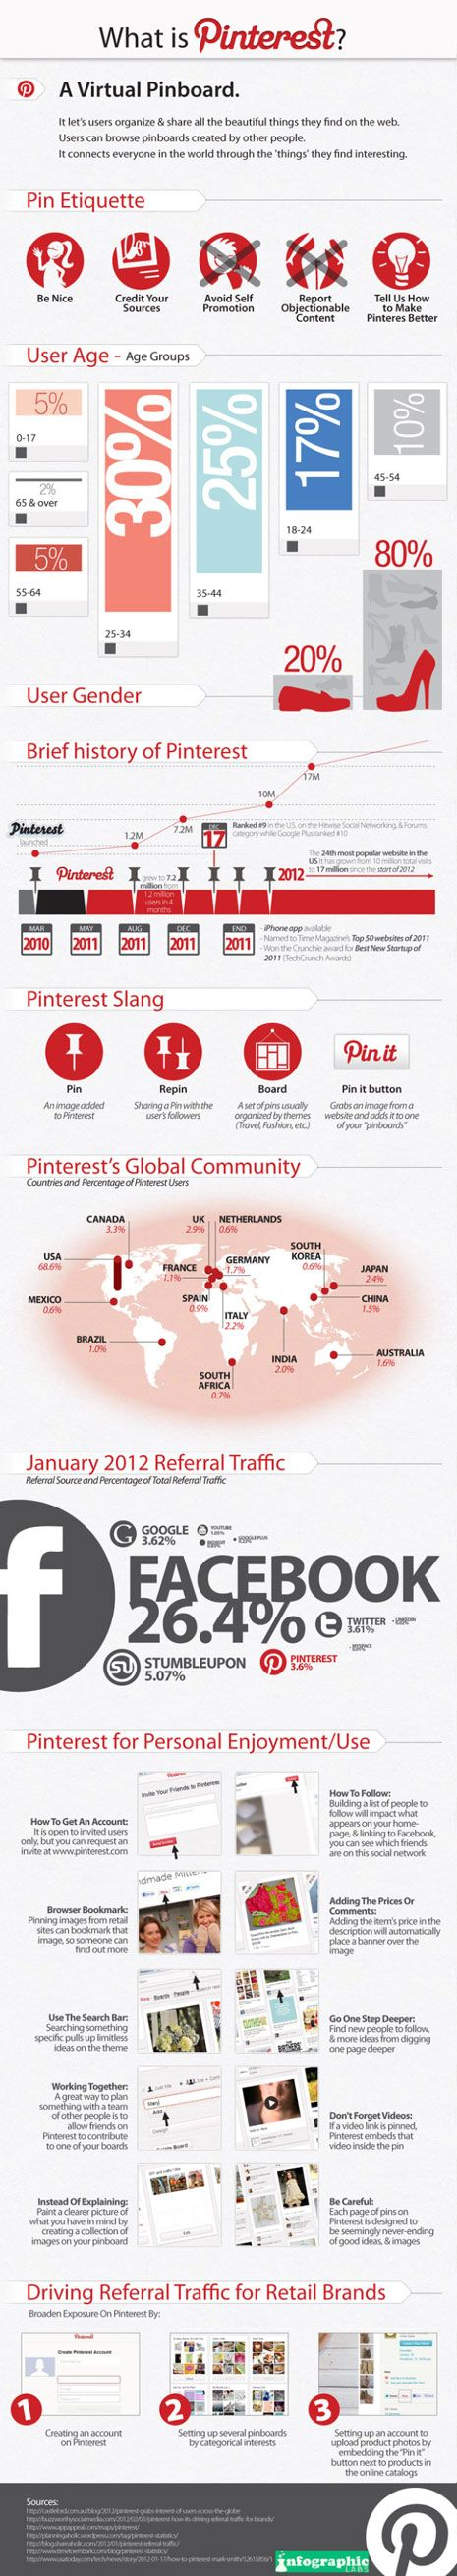 What is Pinterest? - infographics: Social Network, Marketing, Social Media, Menu, Pinterestinfograph, Pinterest Infographic, Es Pinterest, Socialmedia, Business